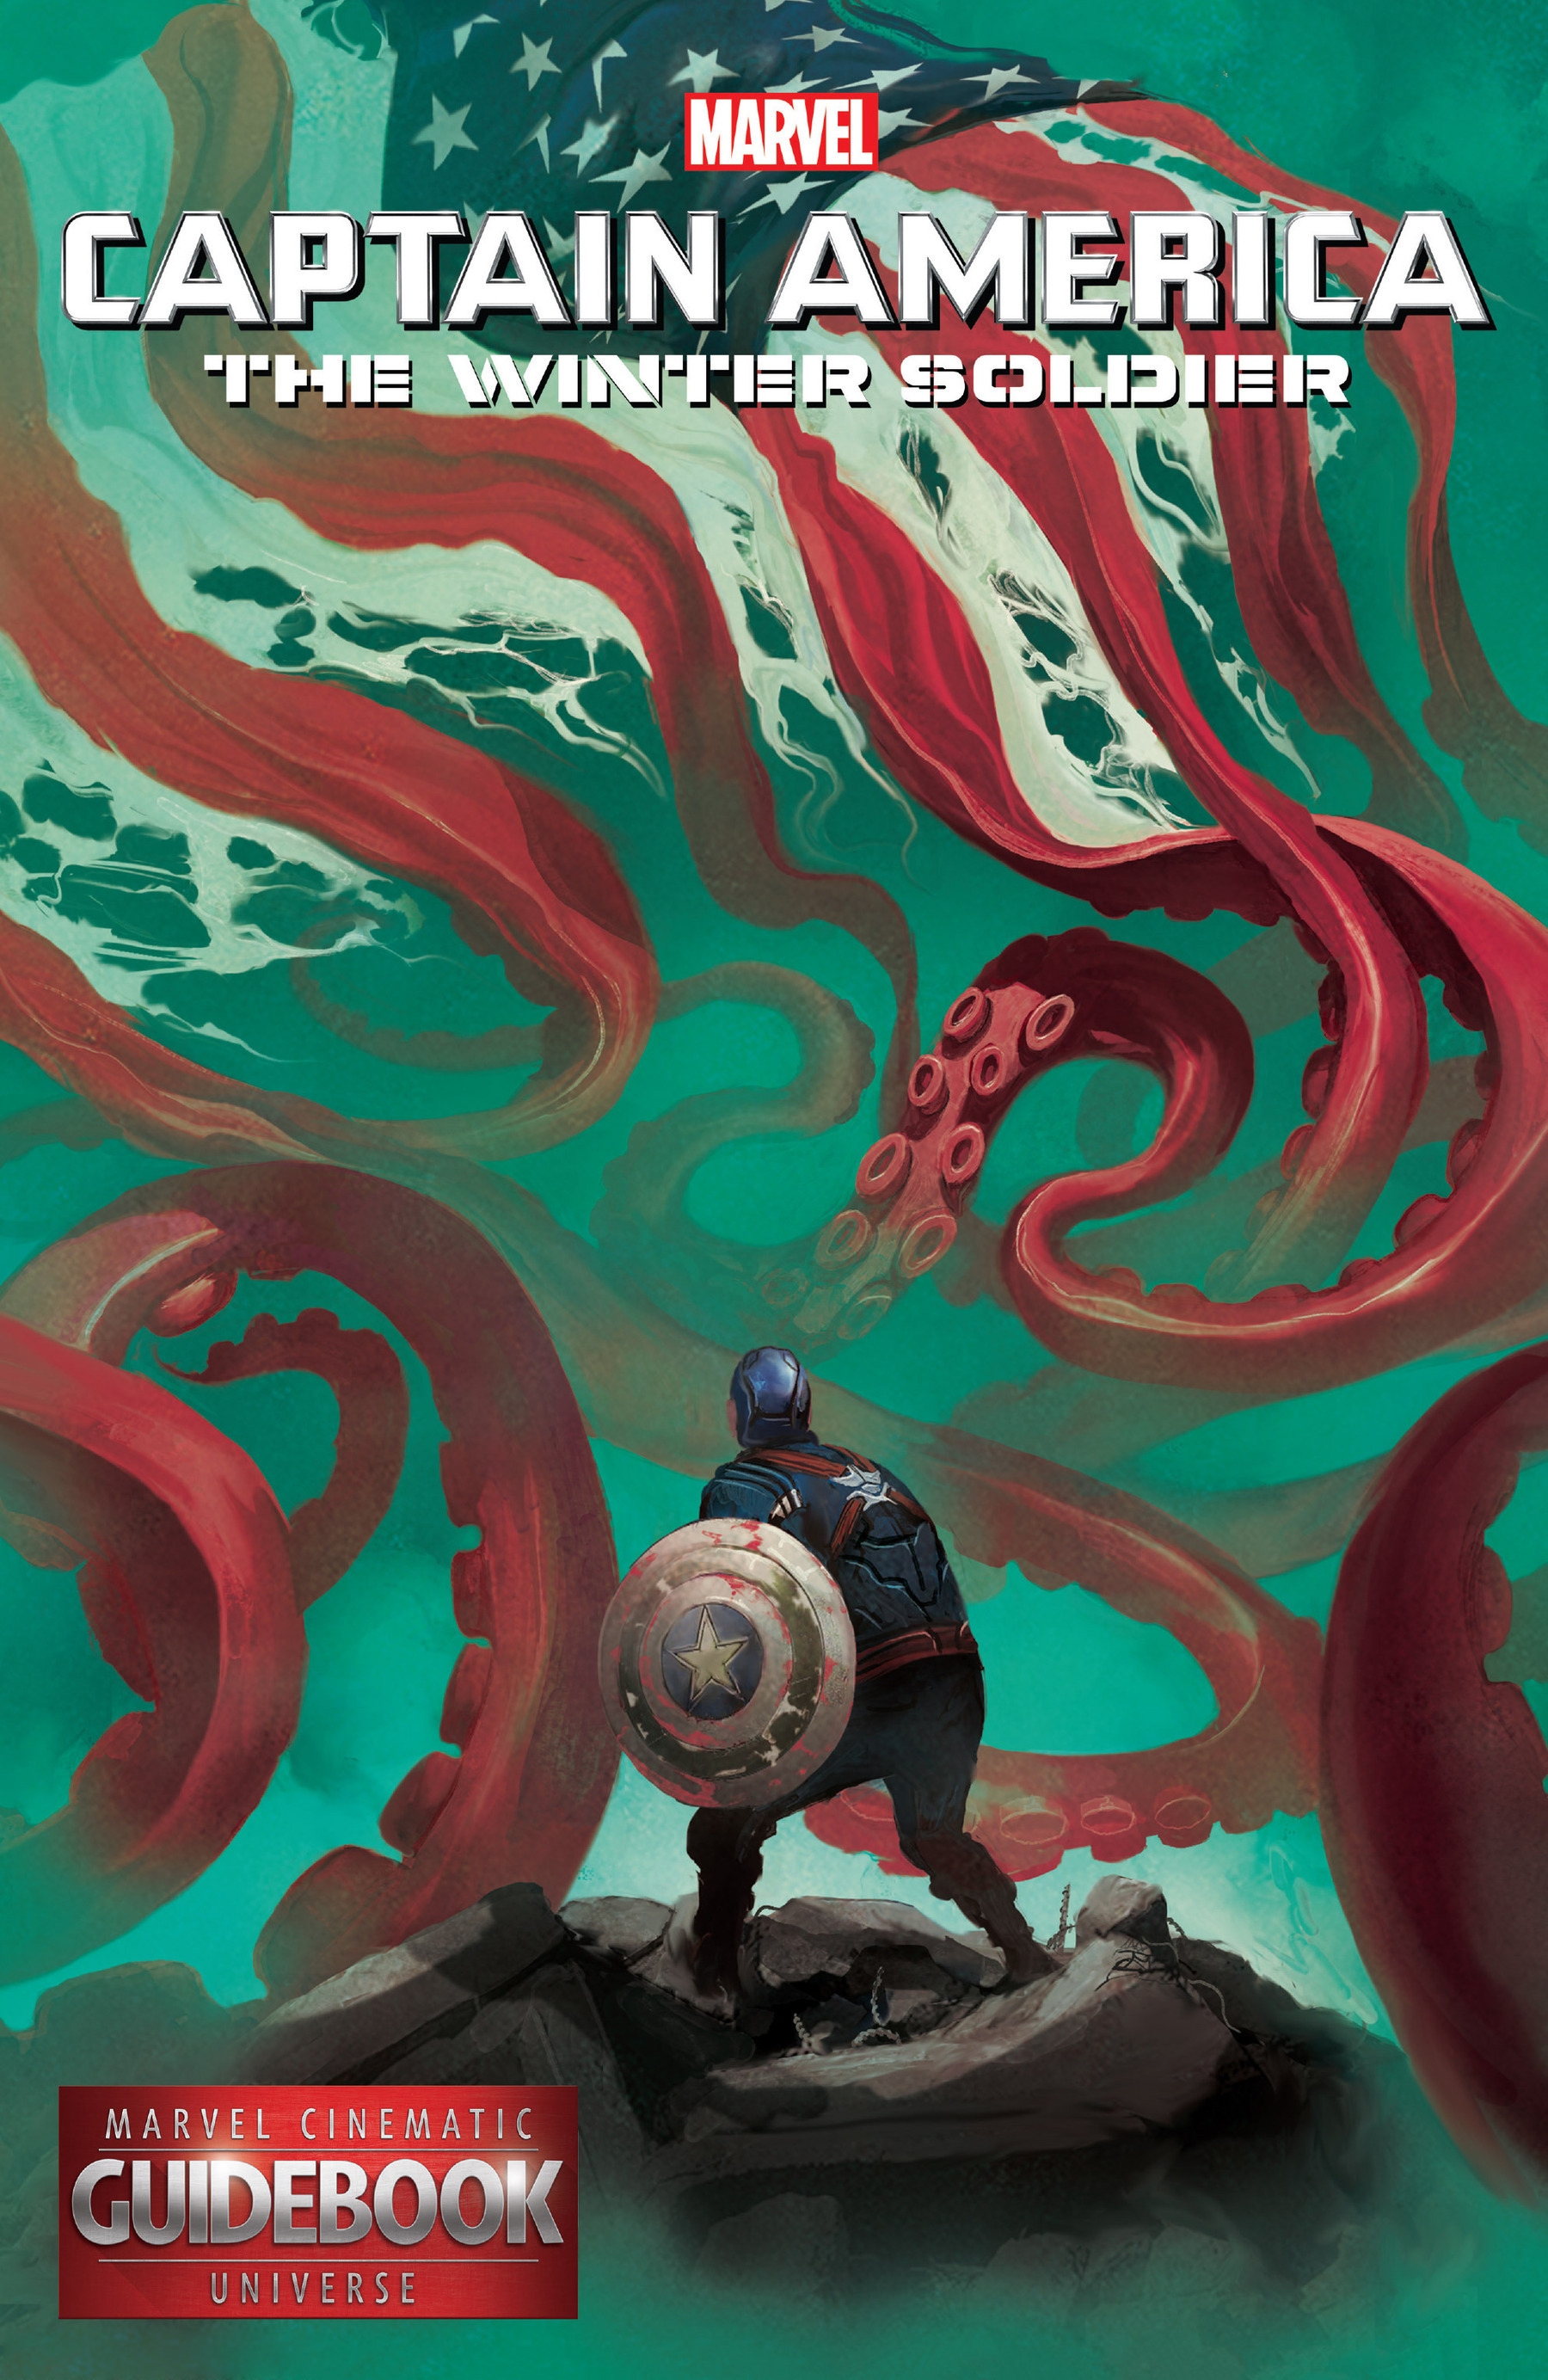 Guidebook to the Marvel Cinematic Universe - Captain America: The Winter Soldier